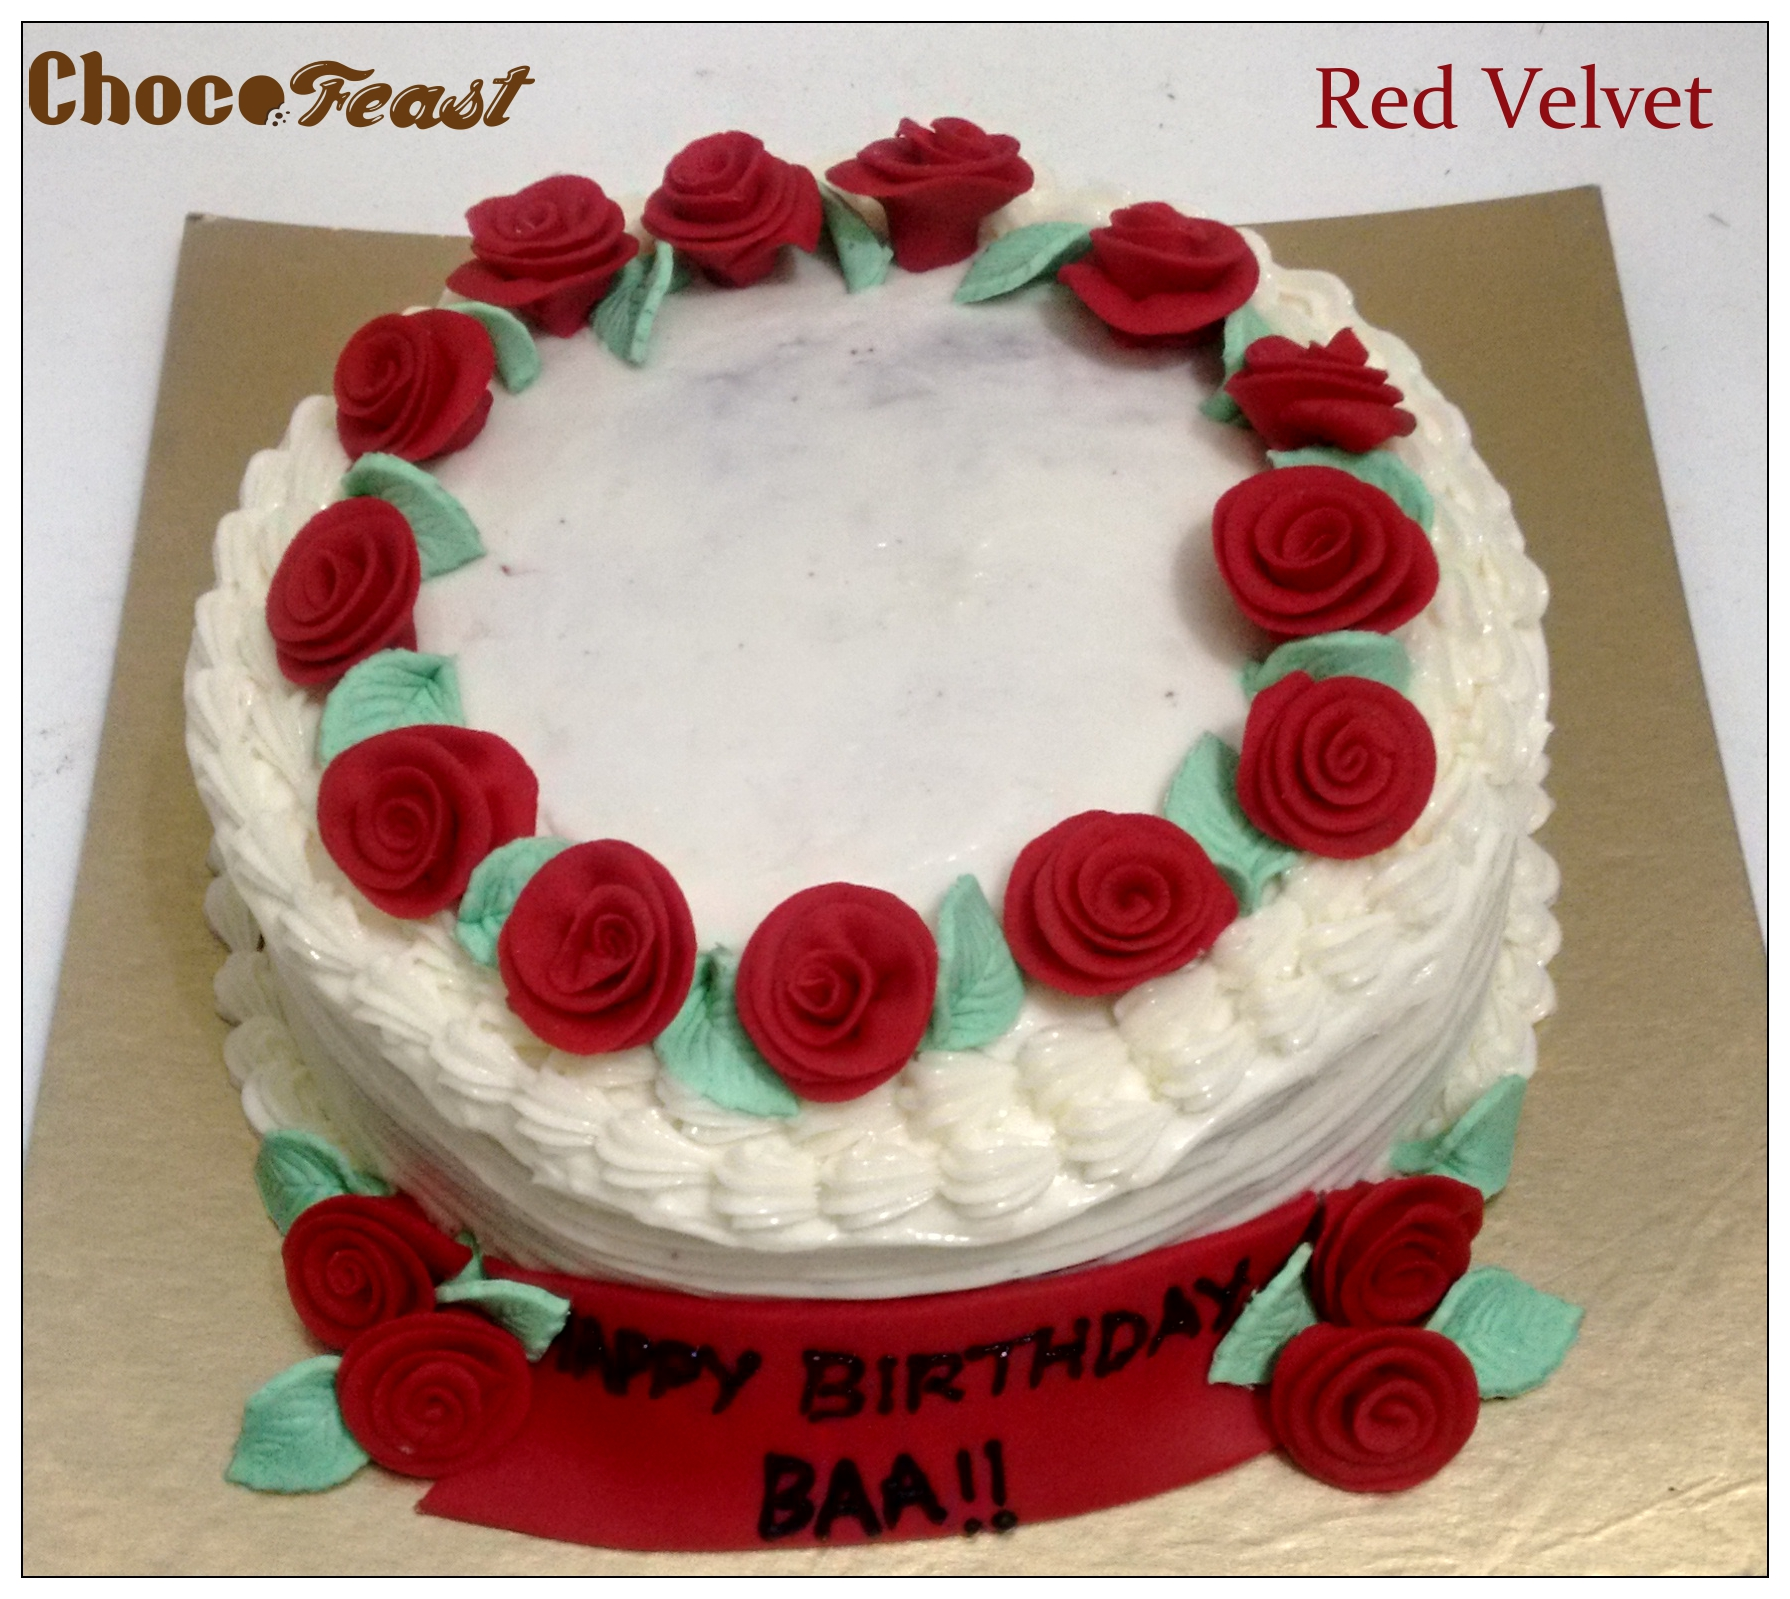 Red Velvet cake mumbai Chocofeast by Sunita